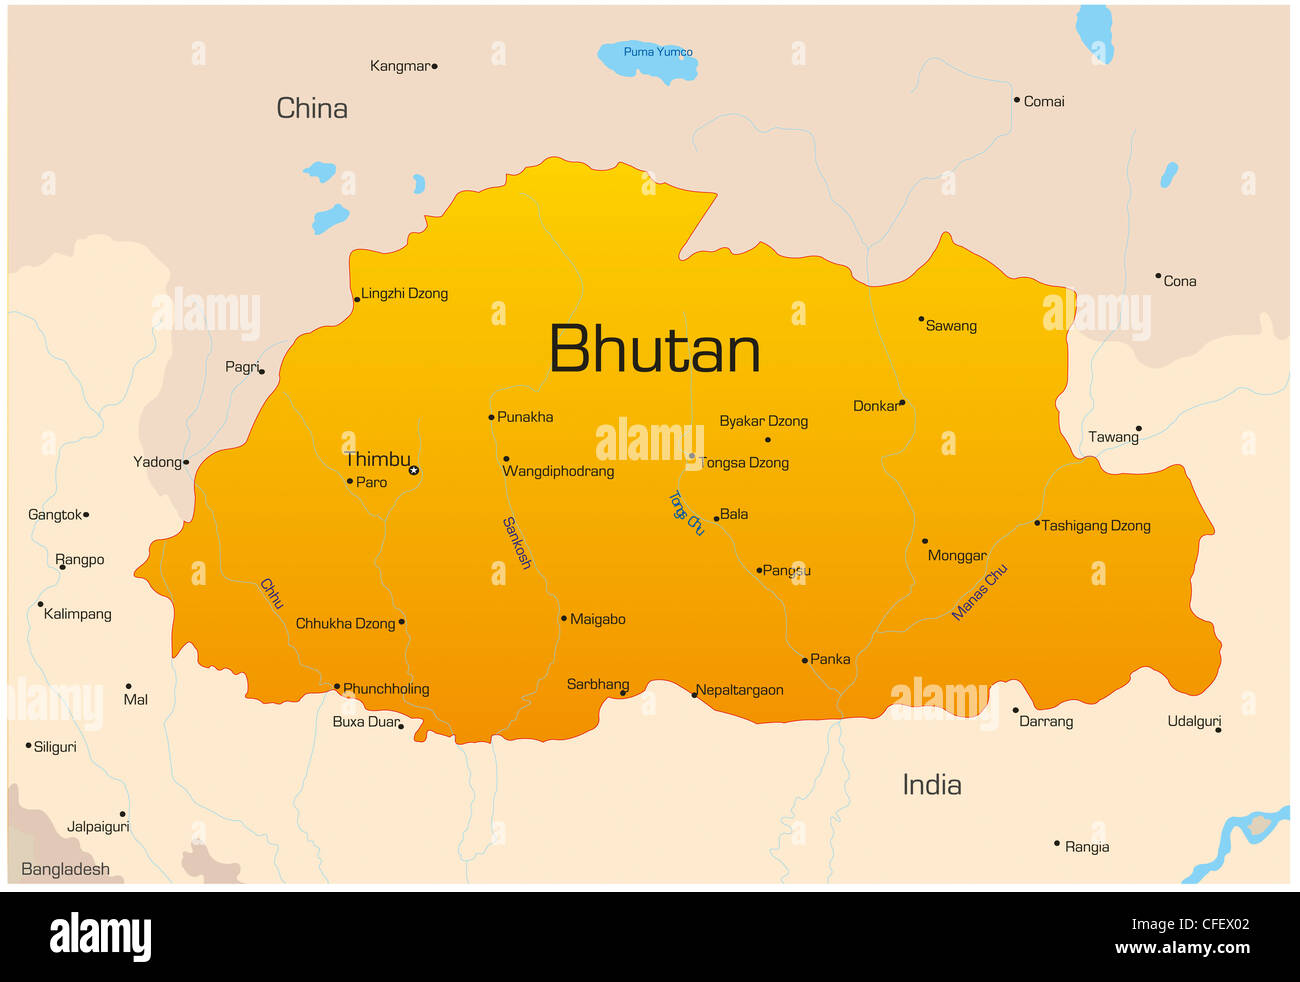 vector map of bhutan country stock photo royalty free image  - vector map of bhutan country